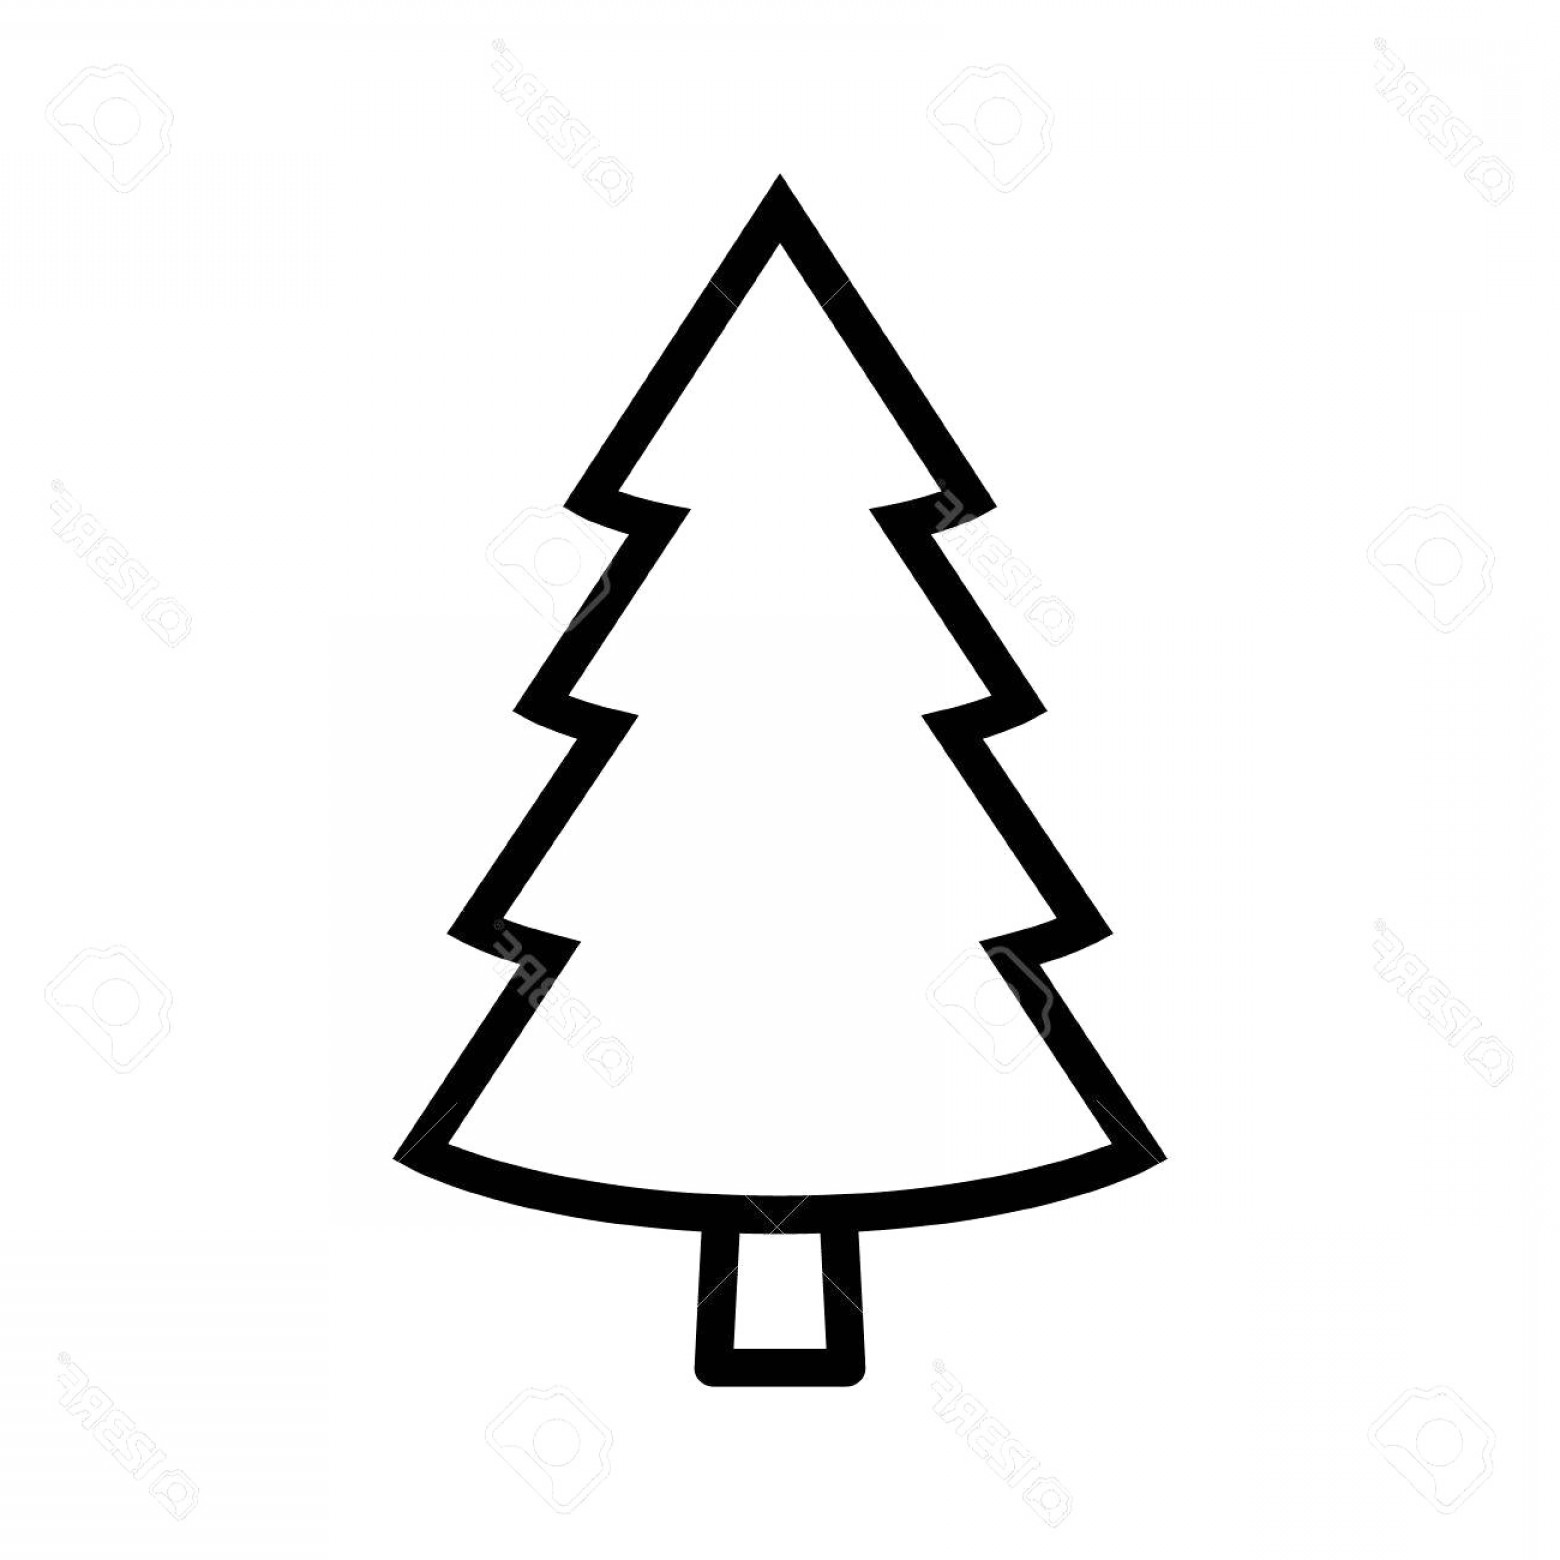 Stylized pine tree clipart clip library download Evergreen Conifer Pine Tree Flat Stylized Line Art Vector ... clip library download